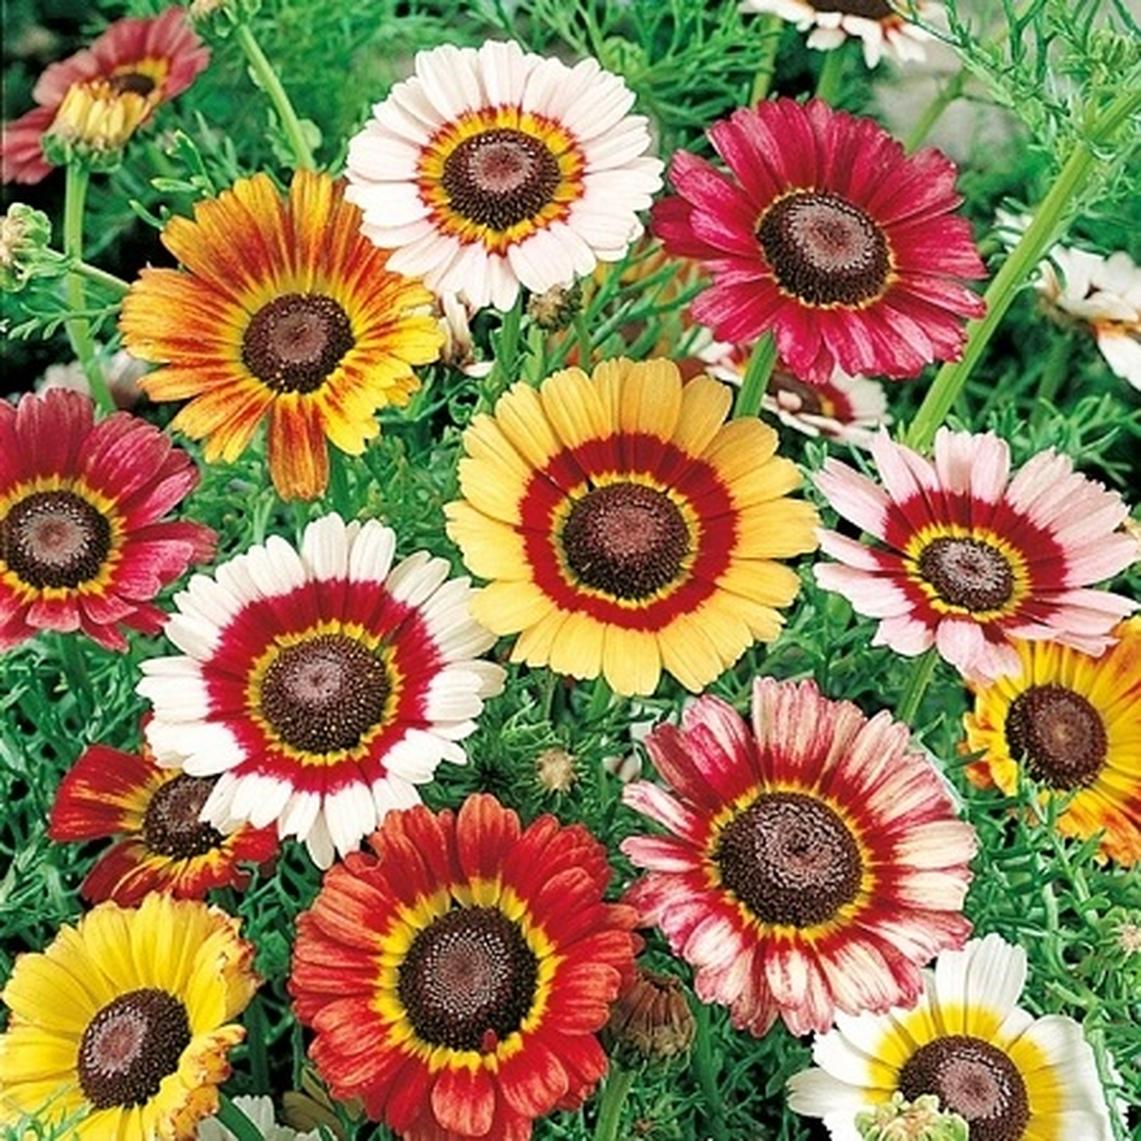 Painted Daisy Seeds - Ounce